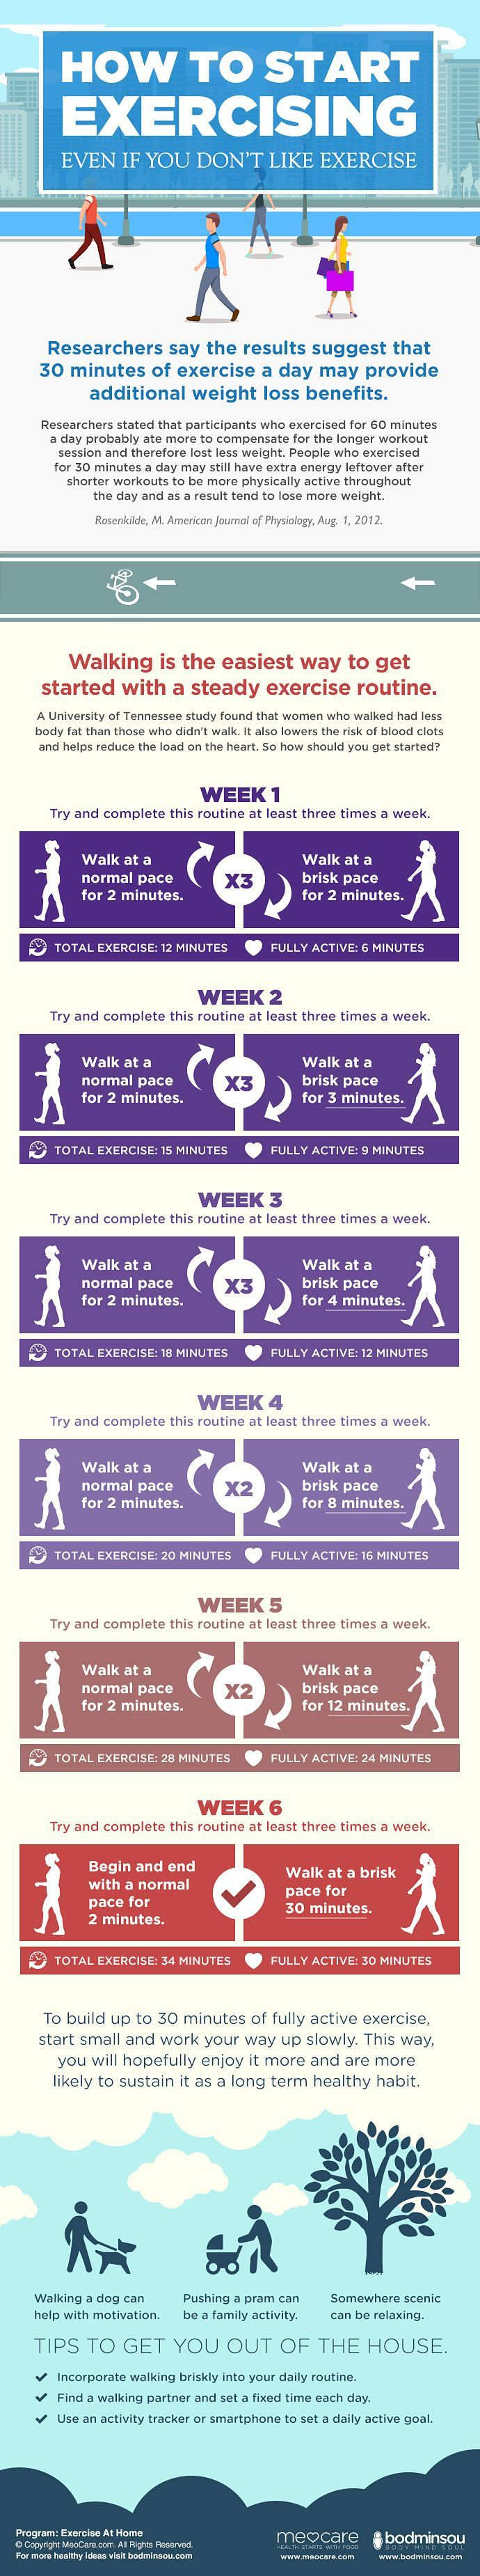 How To Start Exercising Taken from our online Healthy Living Programs. Be a healthier you today!    http://www.bodminsou.com/wp-content/uploads/2016/05/Post_HowToStartExercisingSmall.jpg   Walking is the easiest way to get started with a steady exercise routine. In this article we have a free guide and infographic to help